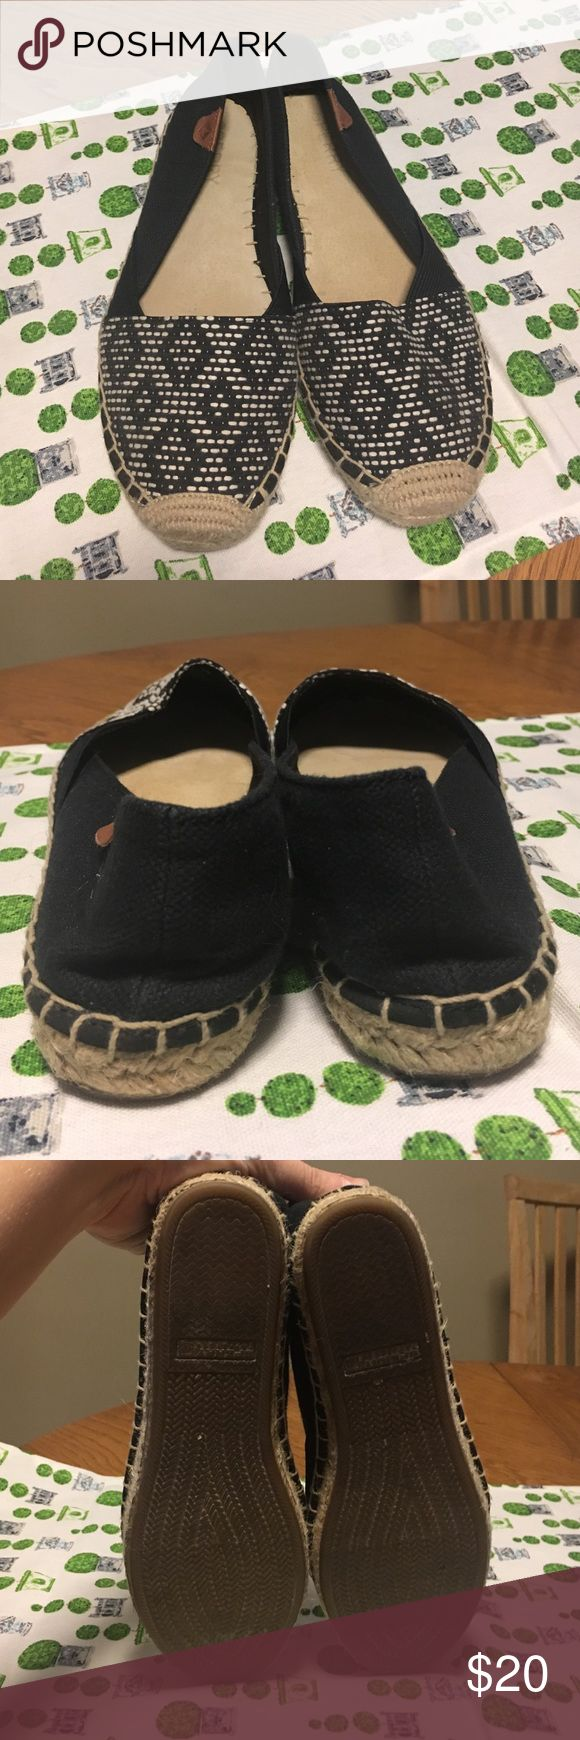 Cute Patterned Sperry Espadrilles Black and white patterned flat Sperry espadrilles in excellent condition! Sperry Shoes Espadrilles